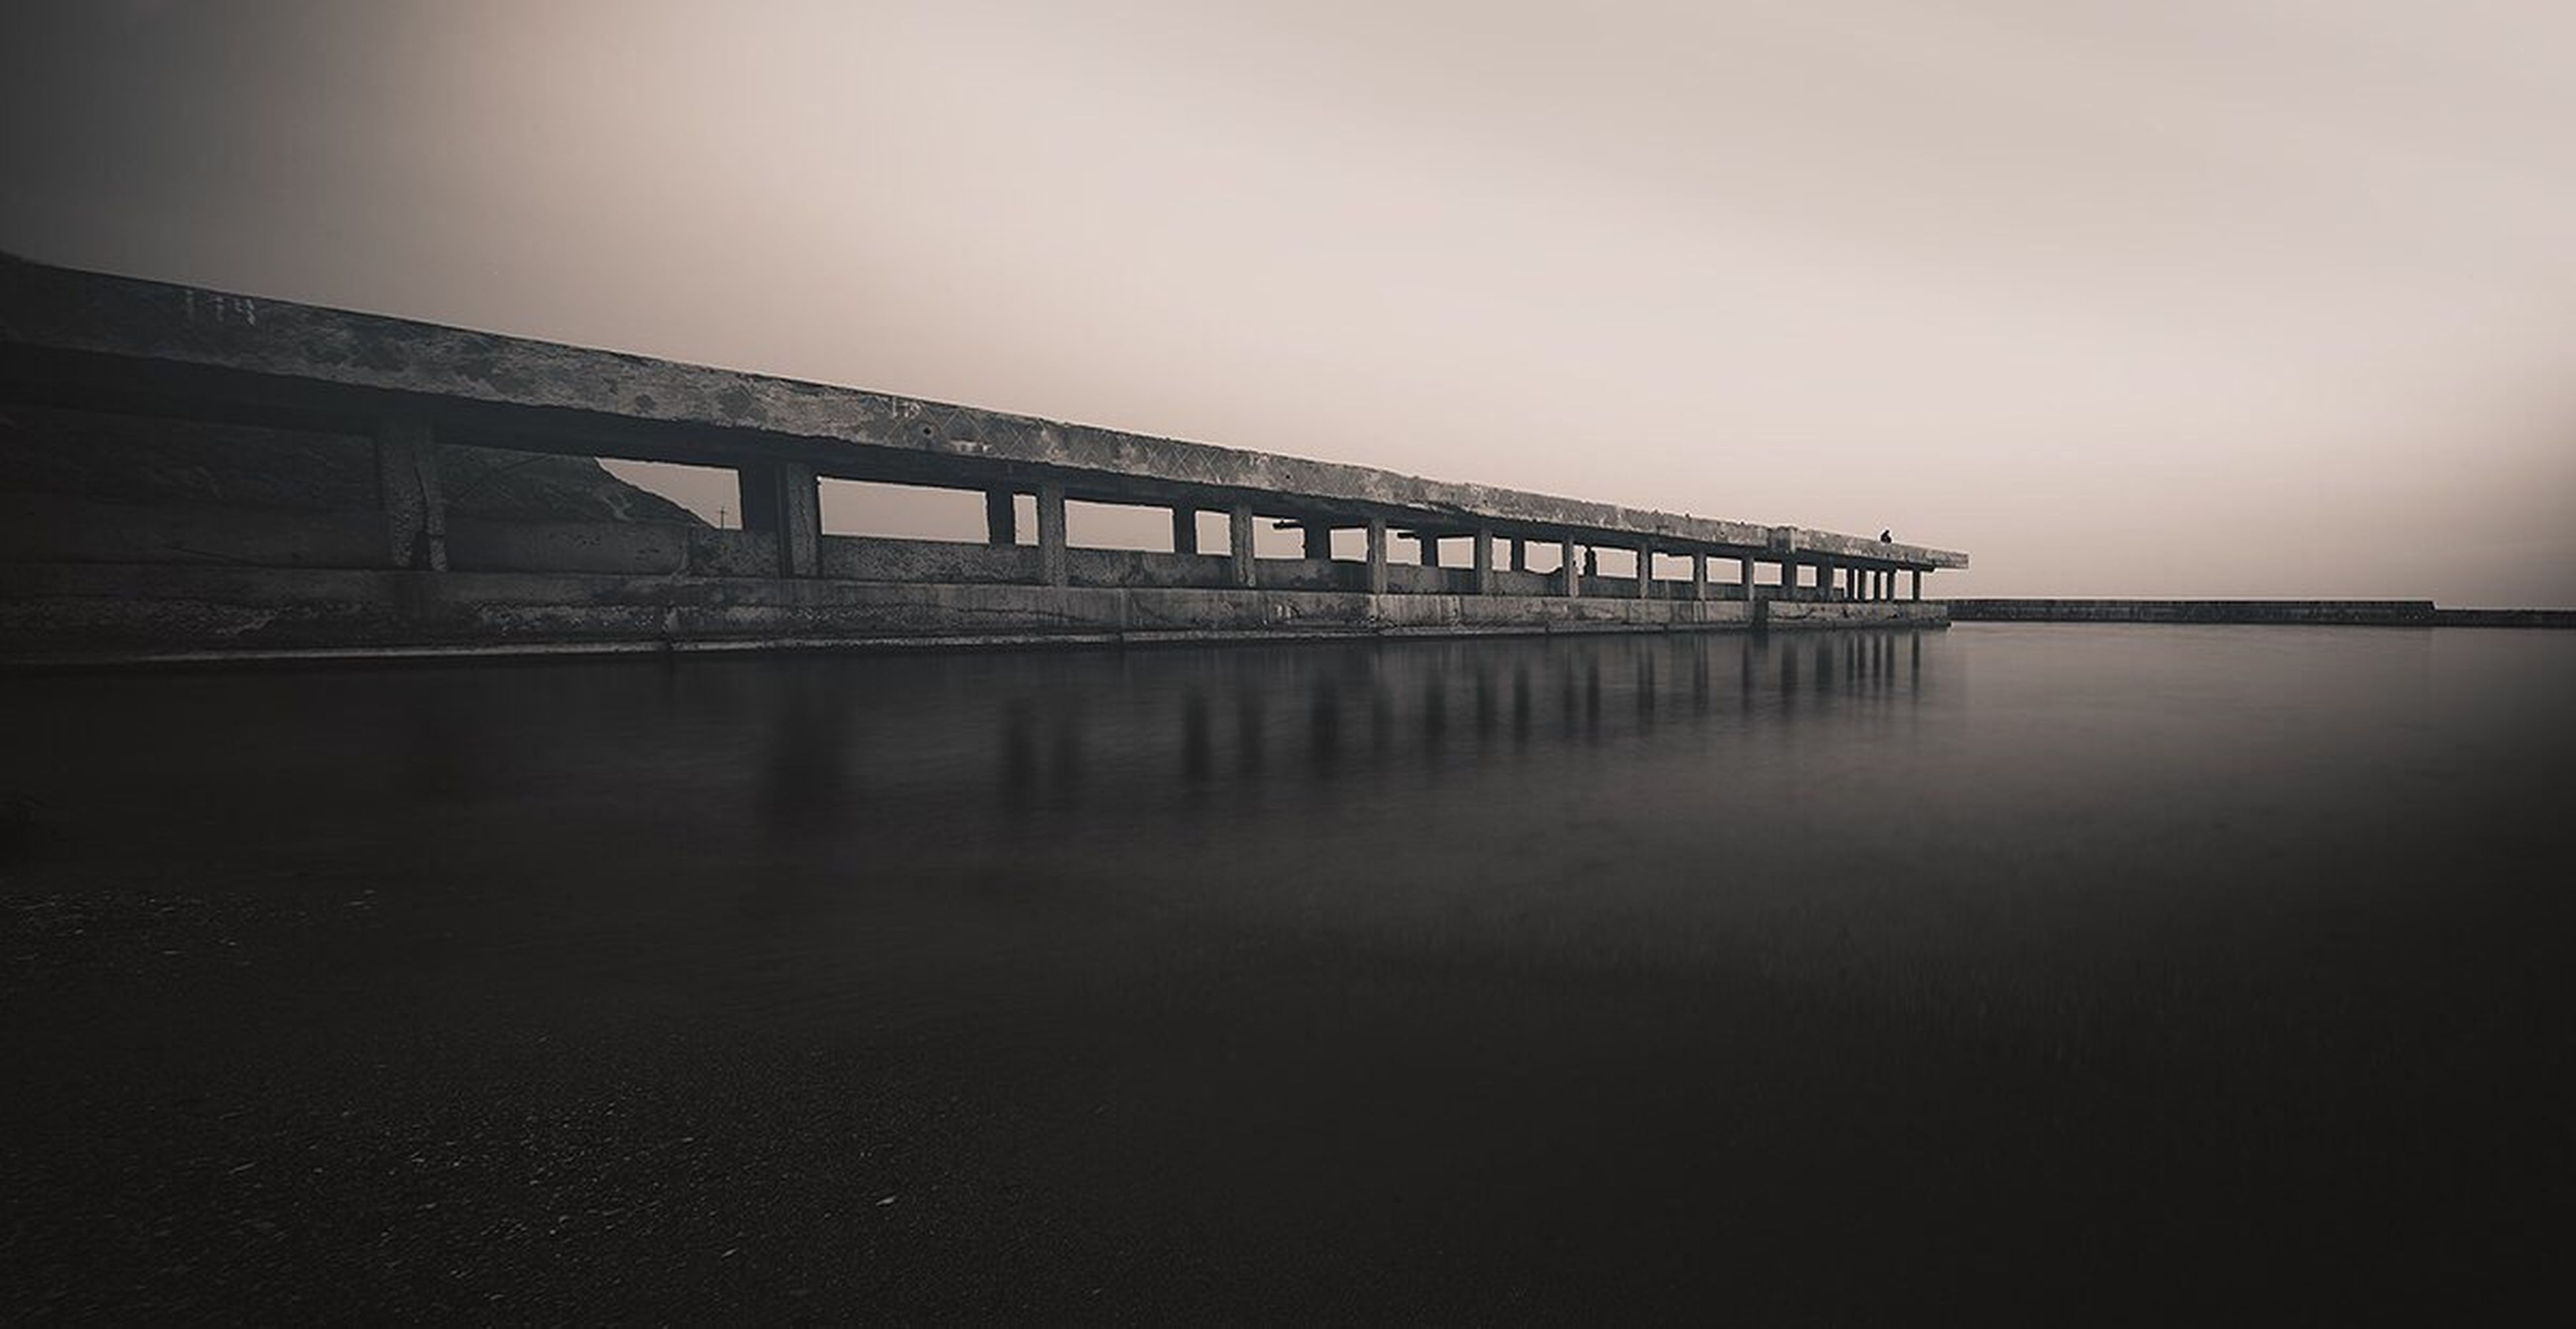 water, built structure, architecture, sea, bridge - man made structure, connection, copy space, clear sky, bridge, sky, reflection, sunset, waterfront, tranquility, tranquil scene, dusk, pier, nature, scenics, river